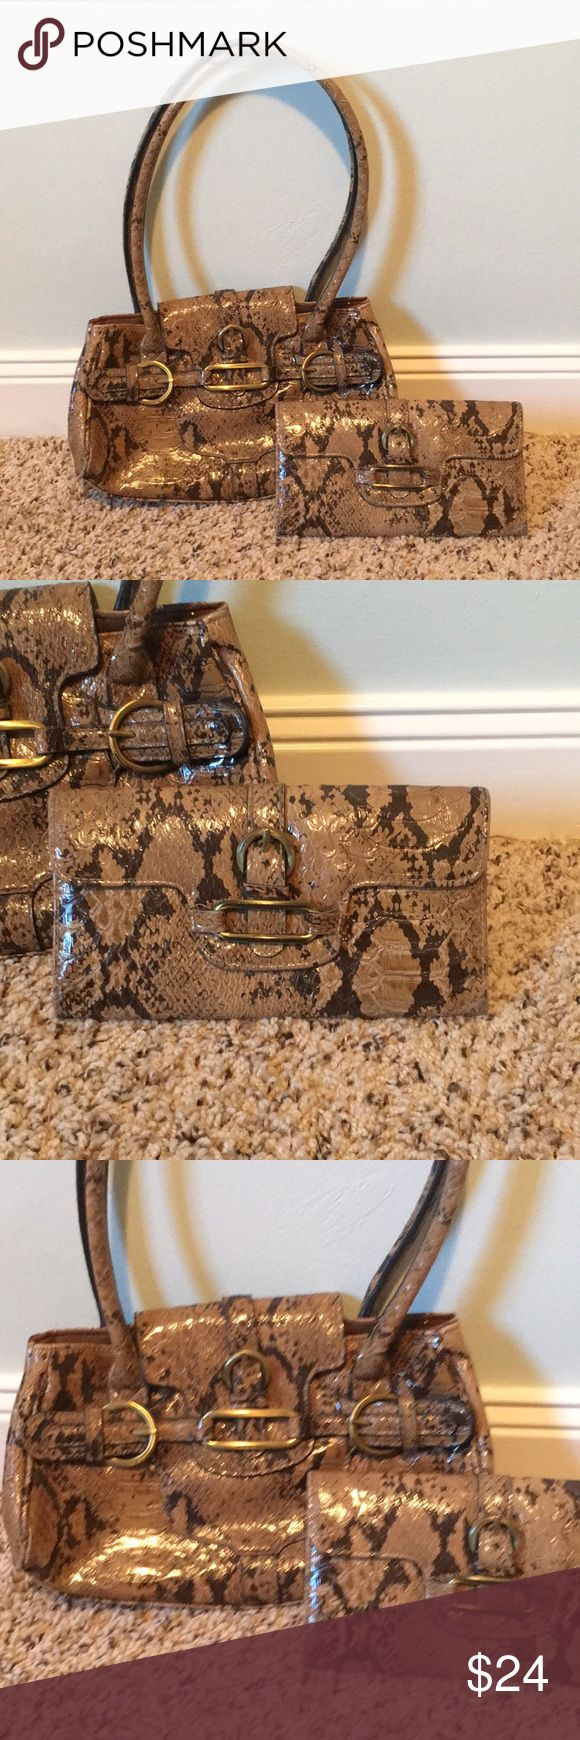 NWOT handbag set with matching wallet Snakeskin New without tags faux snakeskin handbag set with matching full-size 8 inch Wallet gold hardware no name brand kate spade Bags Shoulder Bags